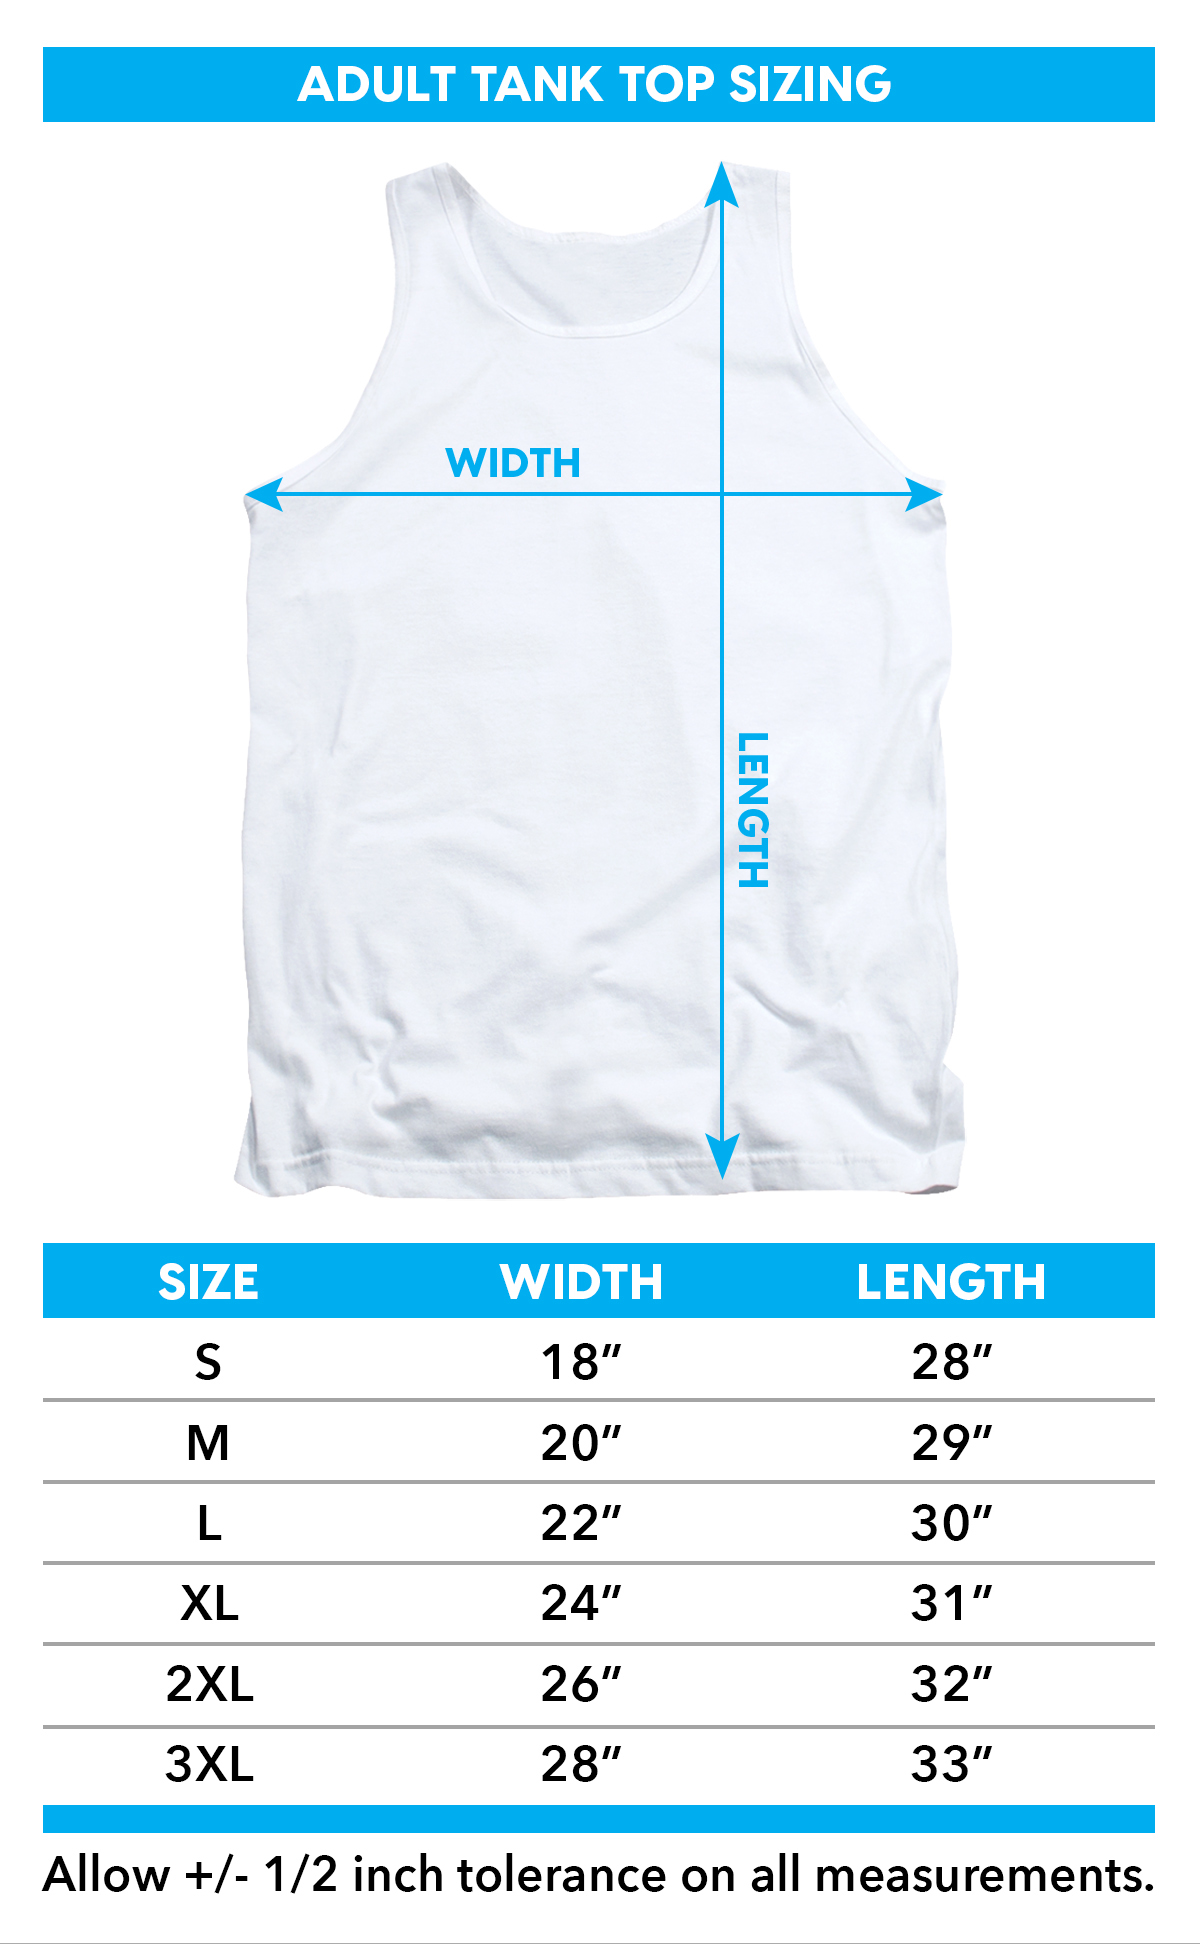 Sizing chart for Scary Movie Tank Top - Help Me TRV-MIRA118-TK